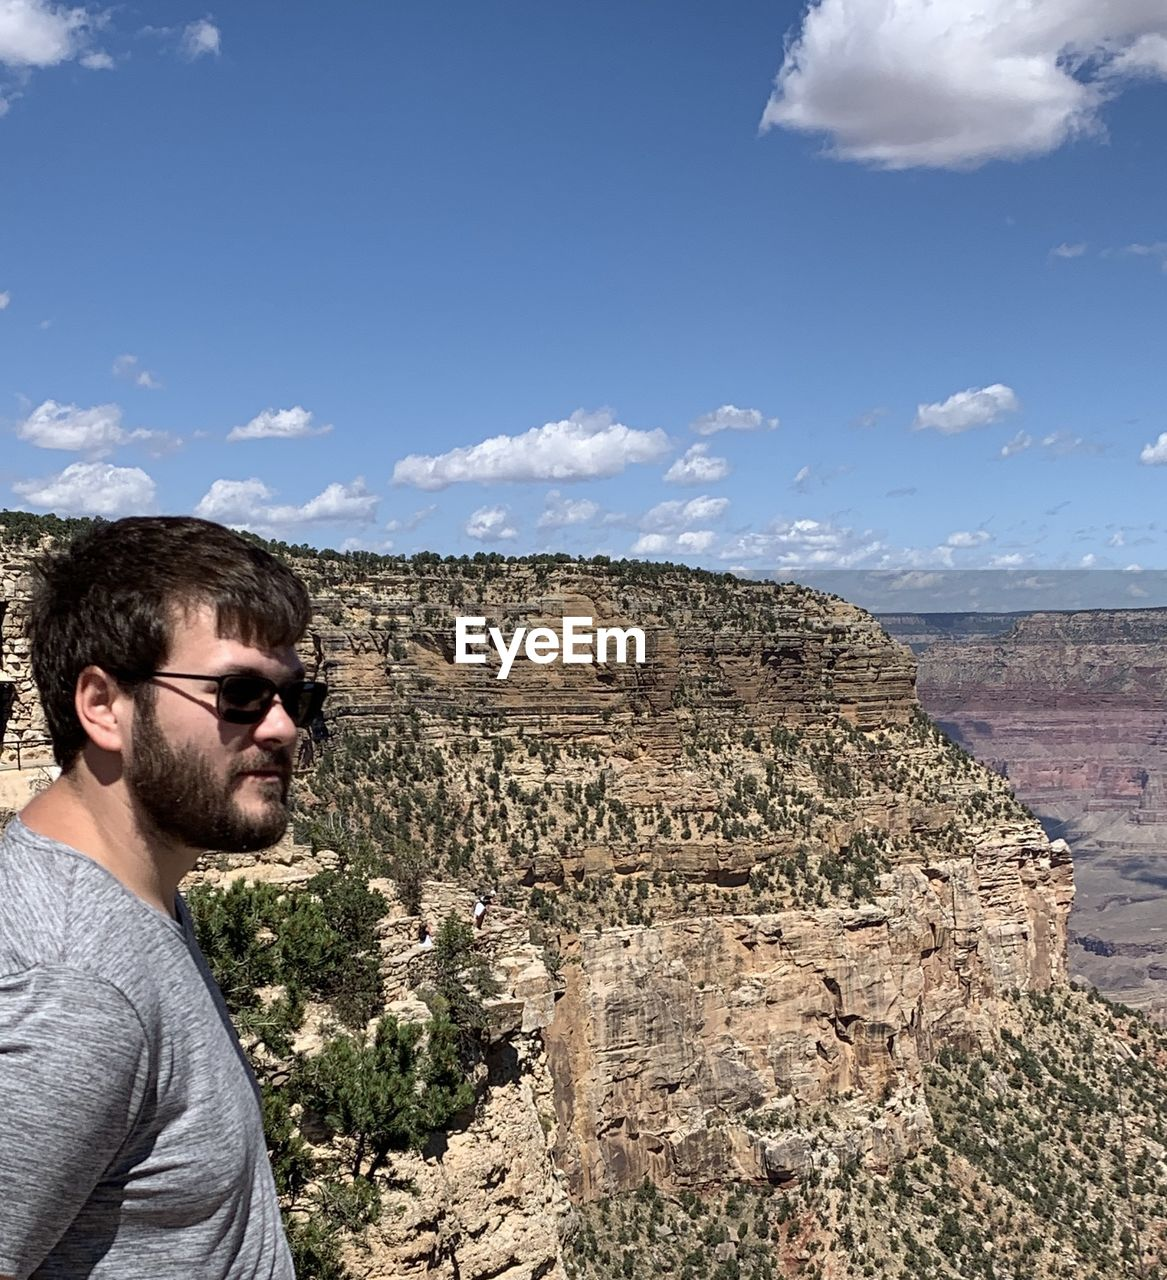 SIDE VIEW OF YOUNG MAN AGAINST SUNGLASSES ON MOUNTAIN